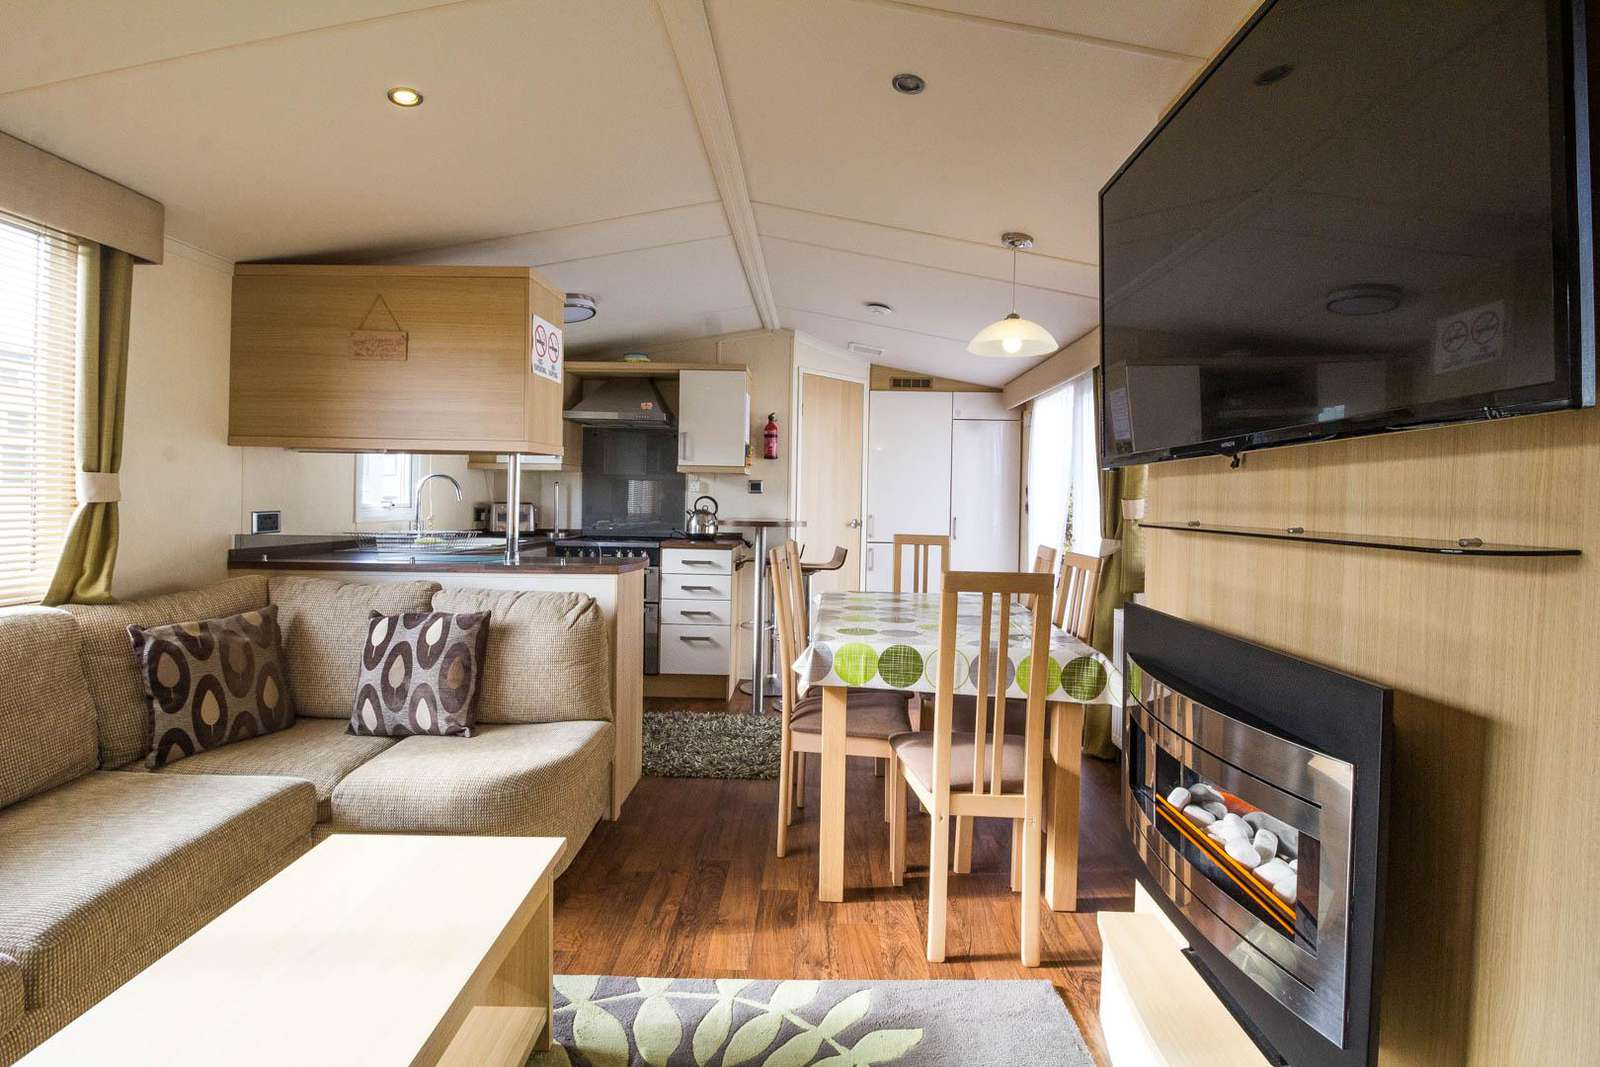 30024D – Dilham area, 3 bed, 8 berth caravan with D/G & C/H. Diamond Rated. - property